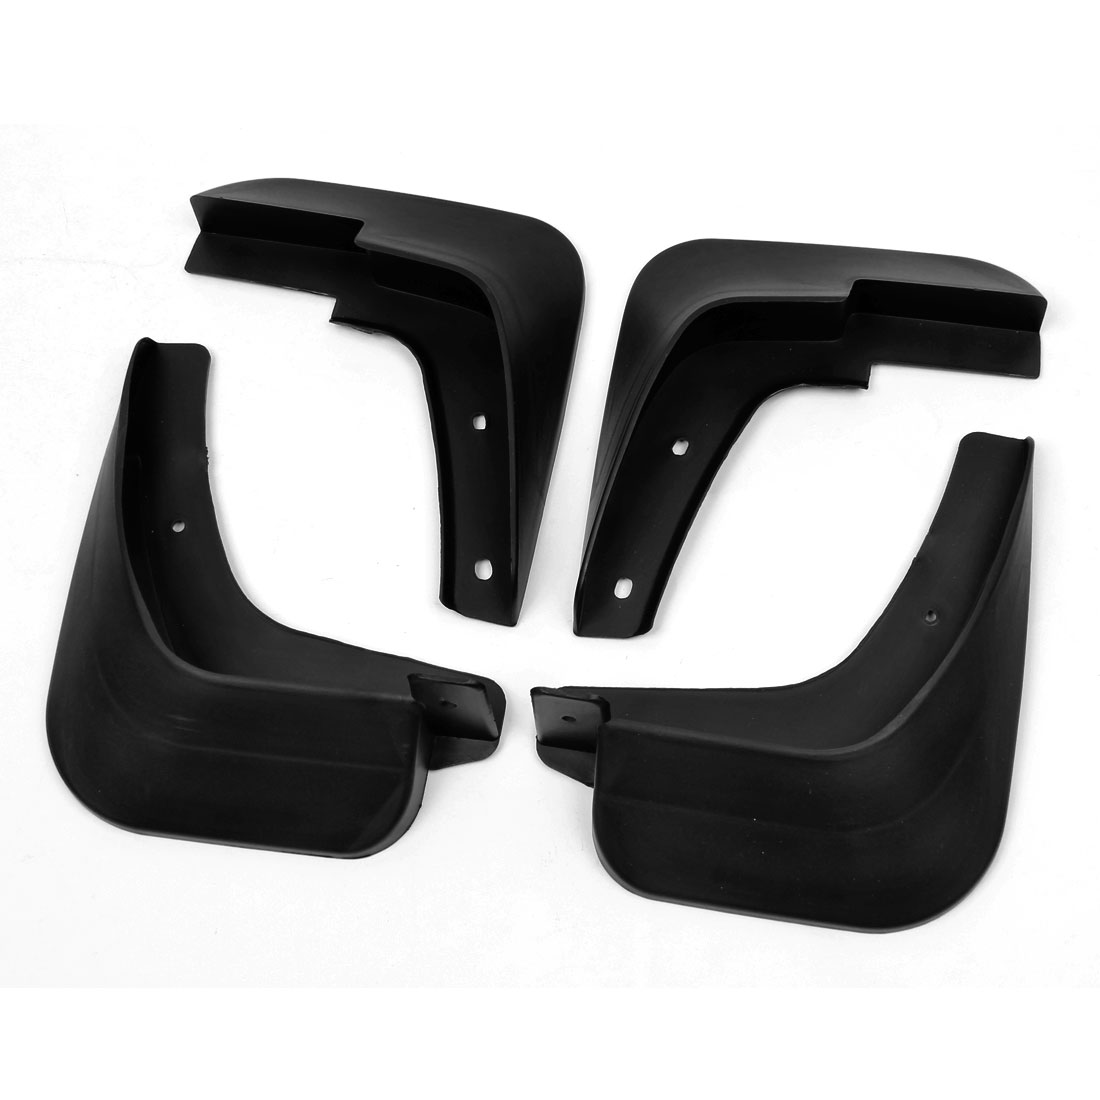 4 in 1 Left Right Splash Guards Plastic Mud Flaps Set for Chevrolet Sail 2010